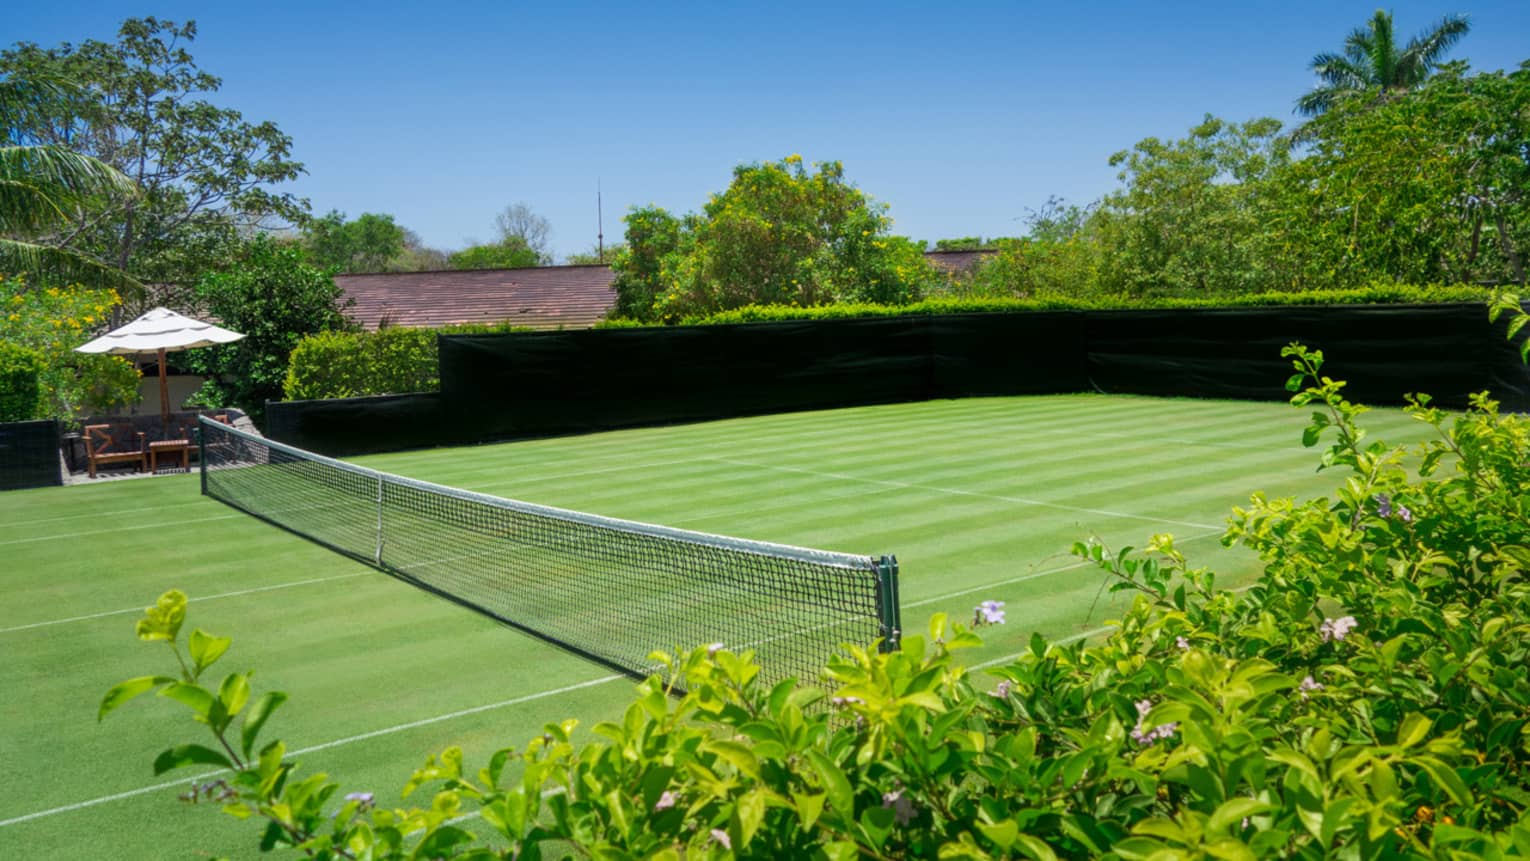 Looking down on empty green tennis court, net surrounded by green bushes, trees